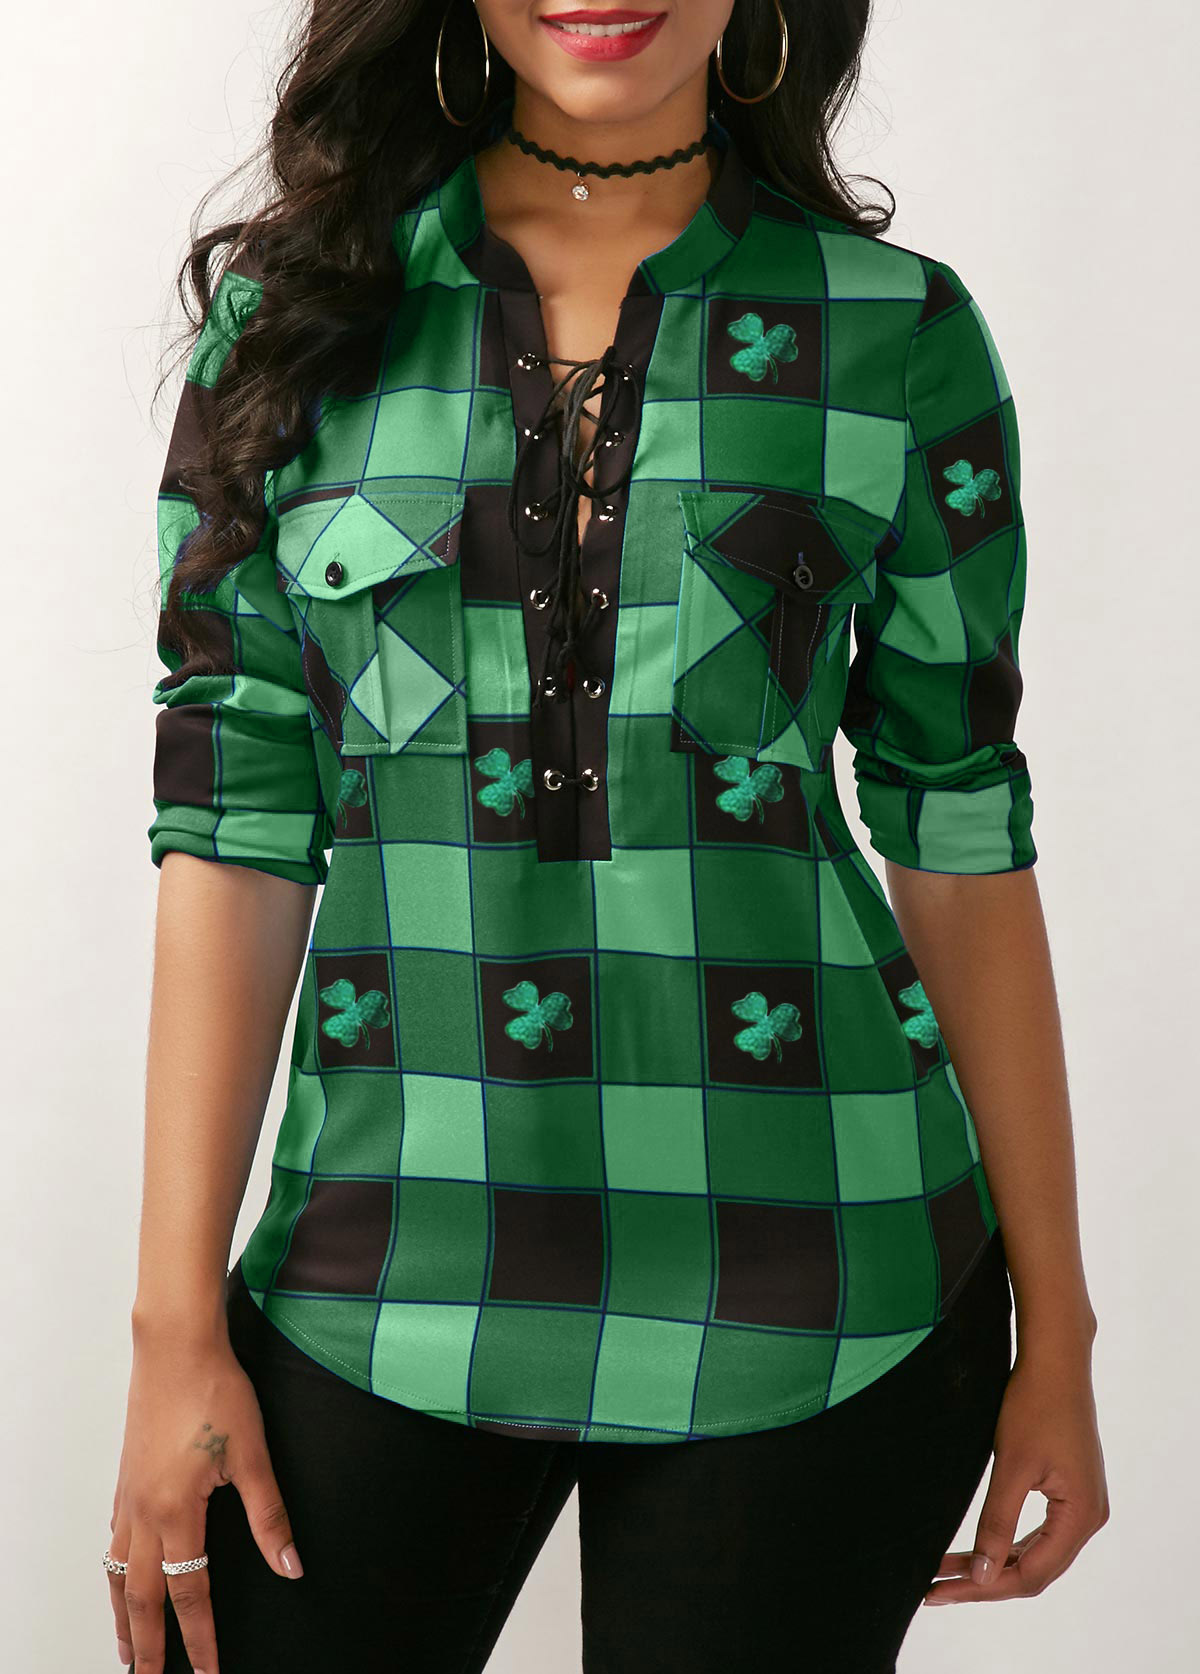 ROTITA Plaid Print Lace Up Front ST Patricks Day Green Blouse